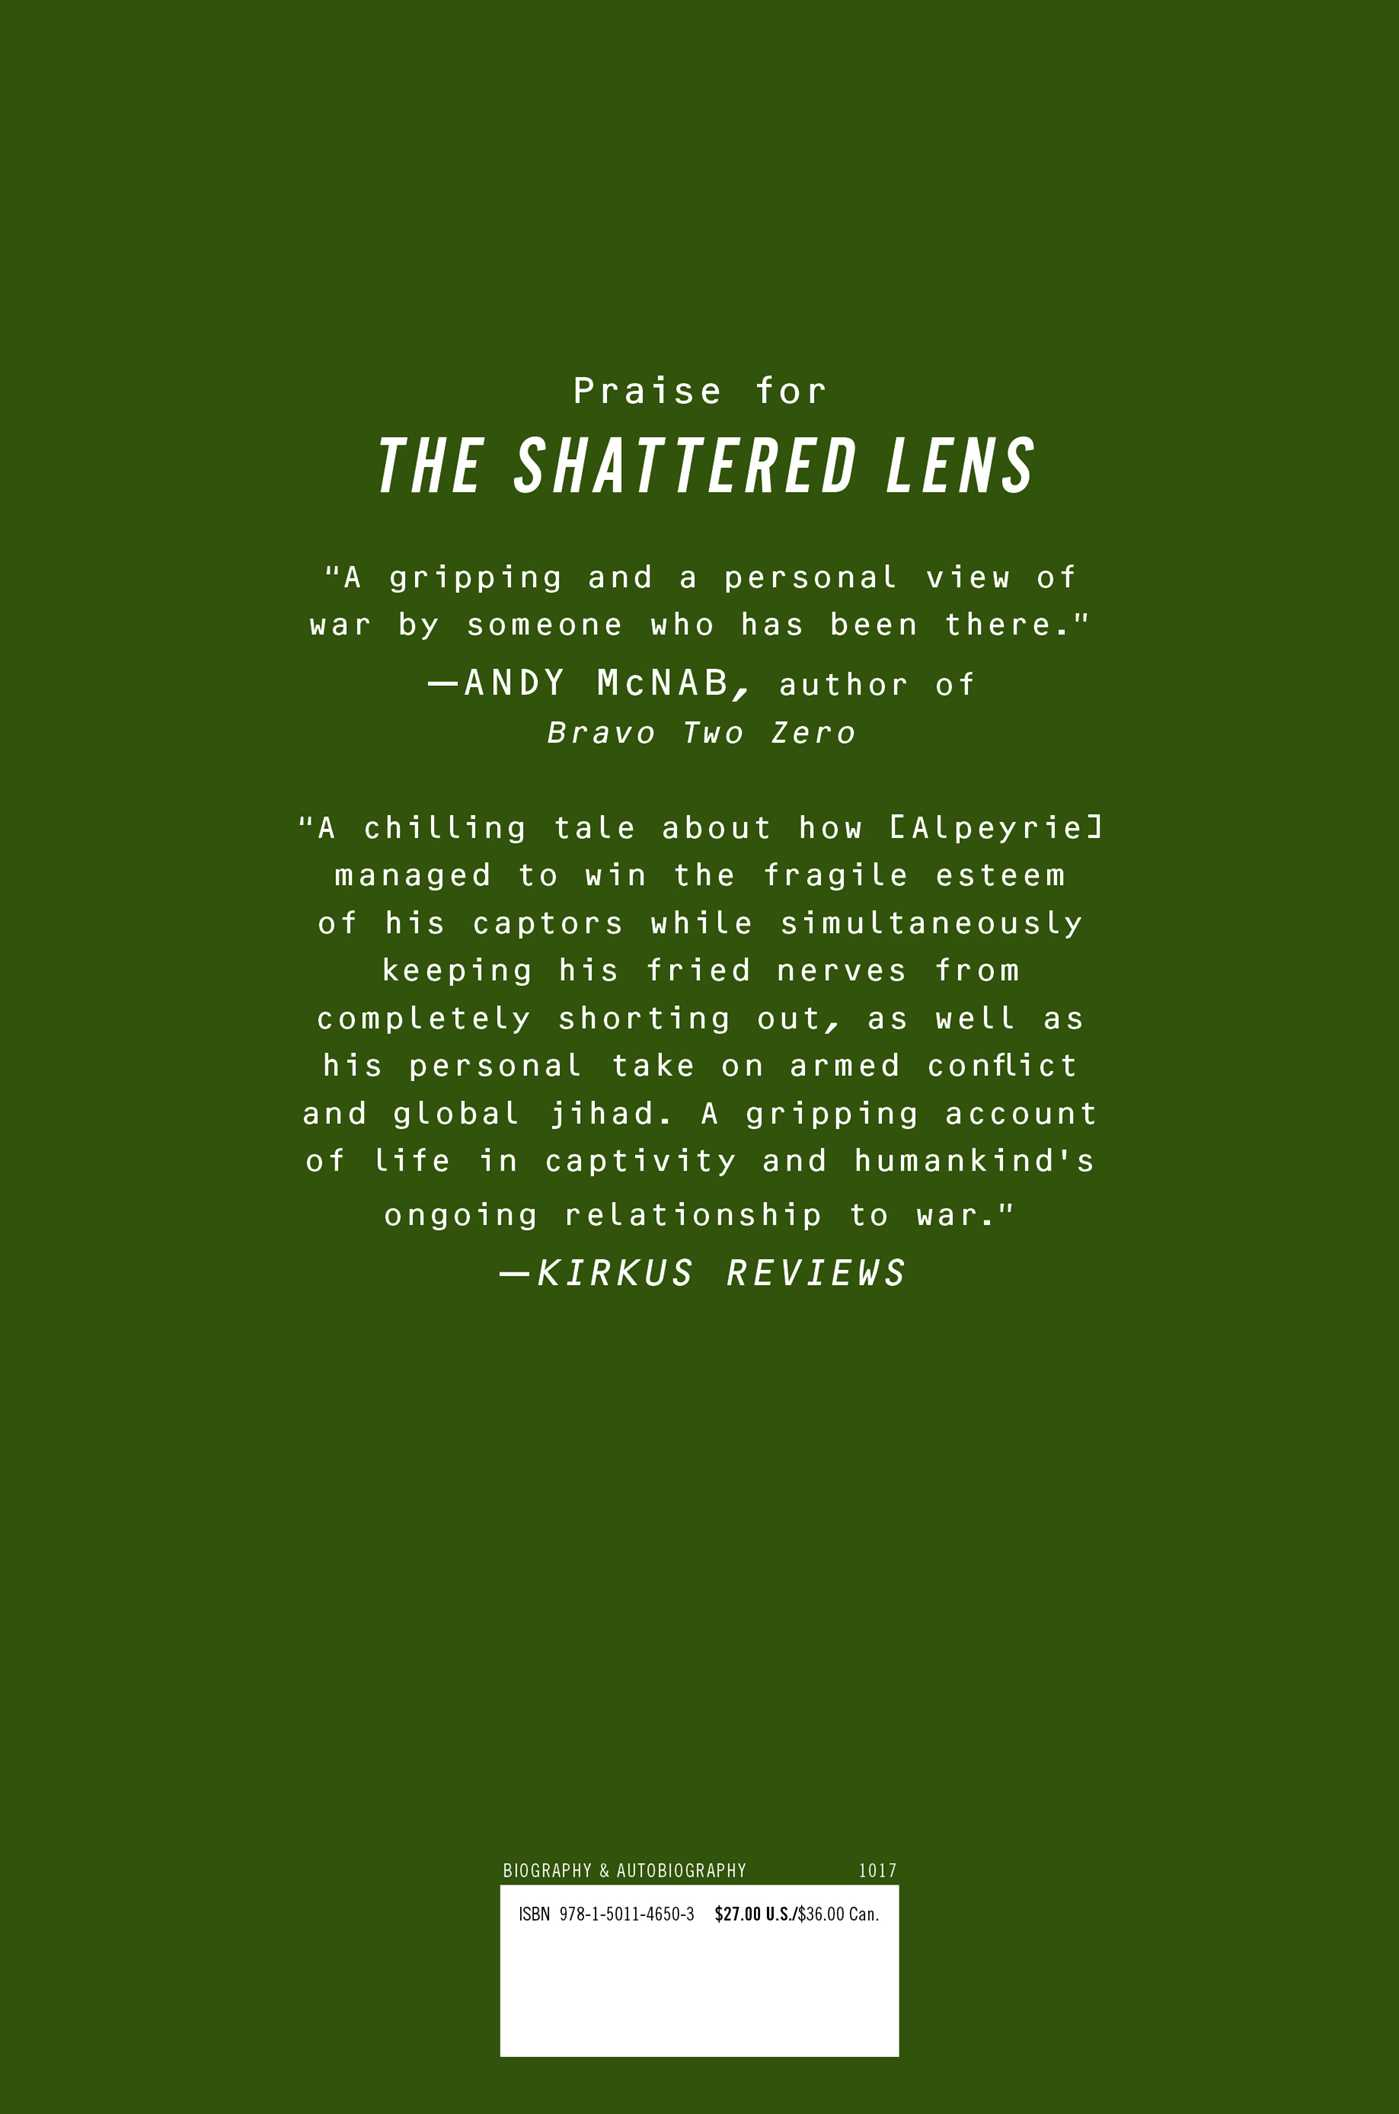 The shattered lens 9781501146503 hr back